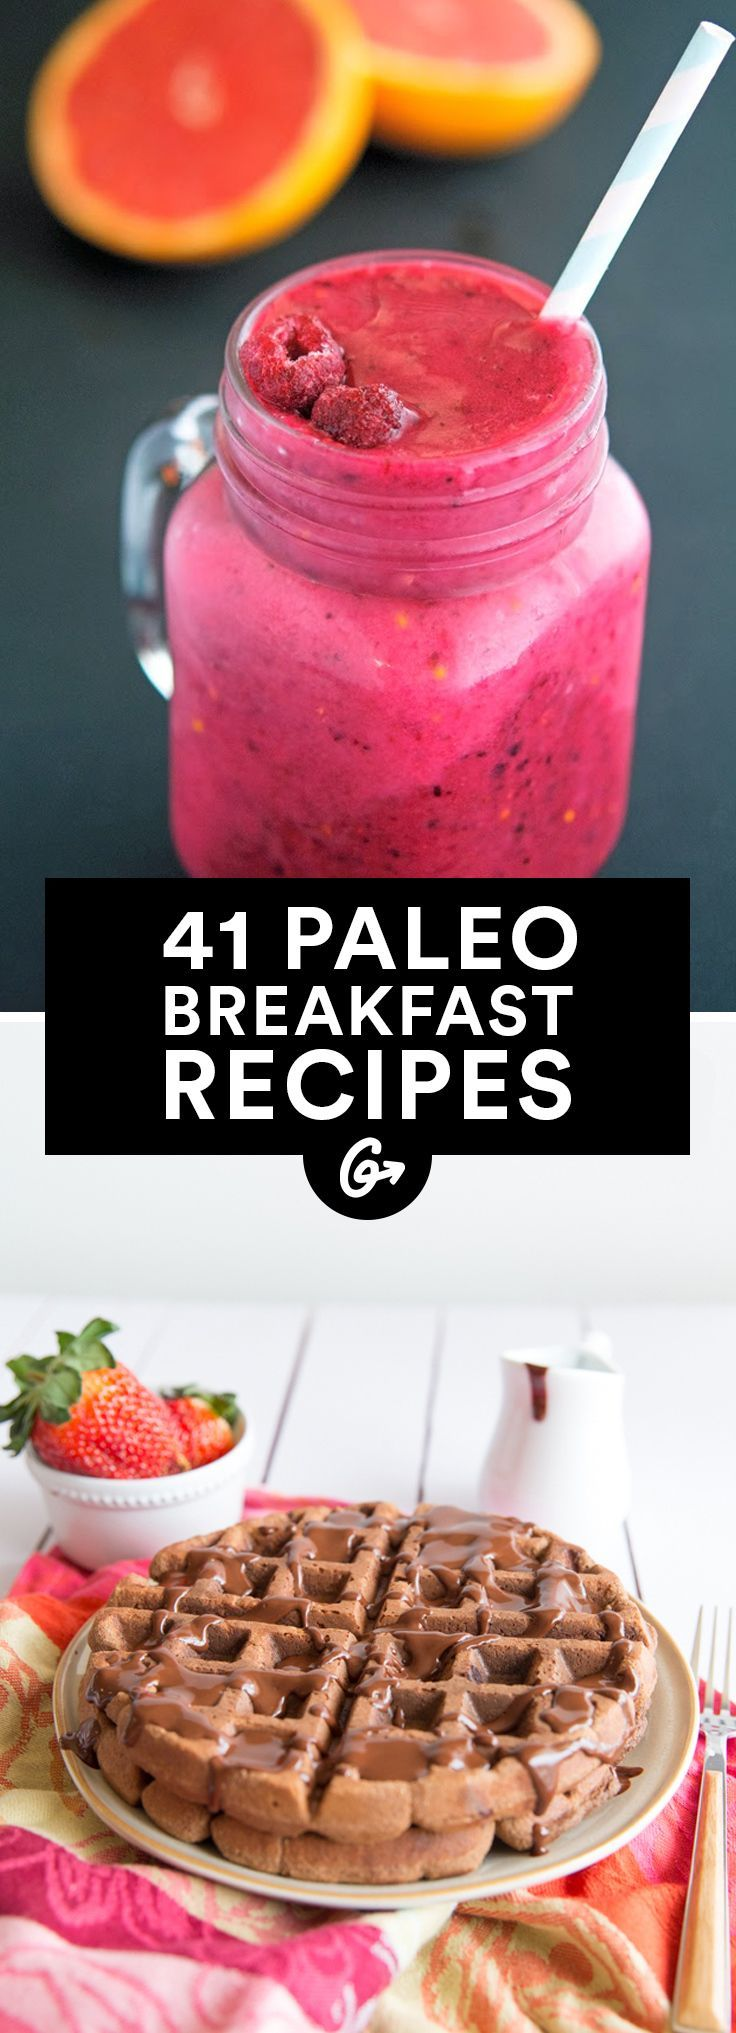 11 Incredible Pinterest Boards for Easy Paleo Recipes